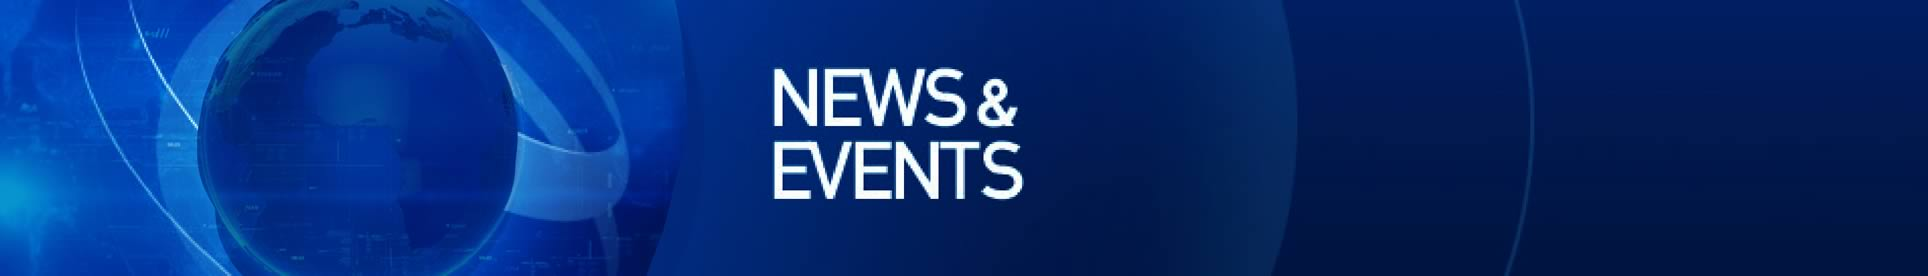 News and Events Banner